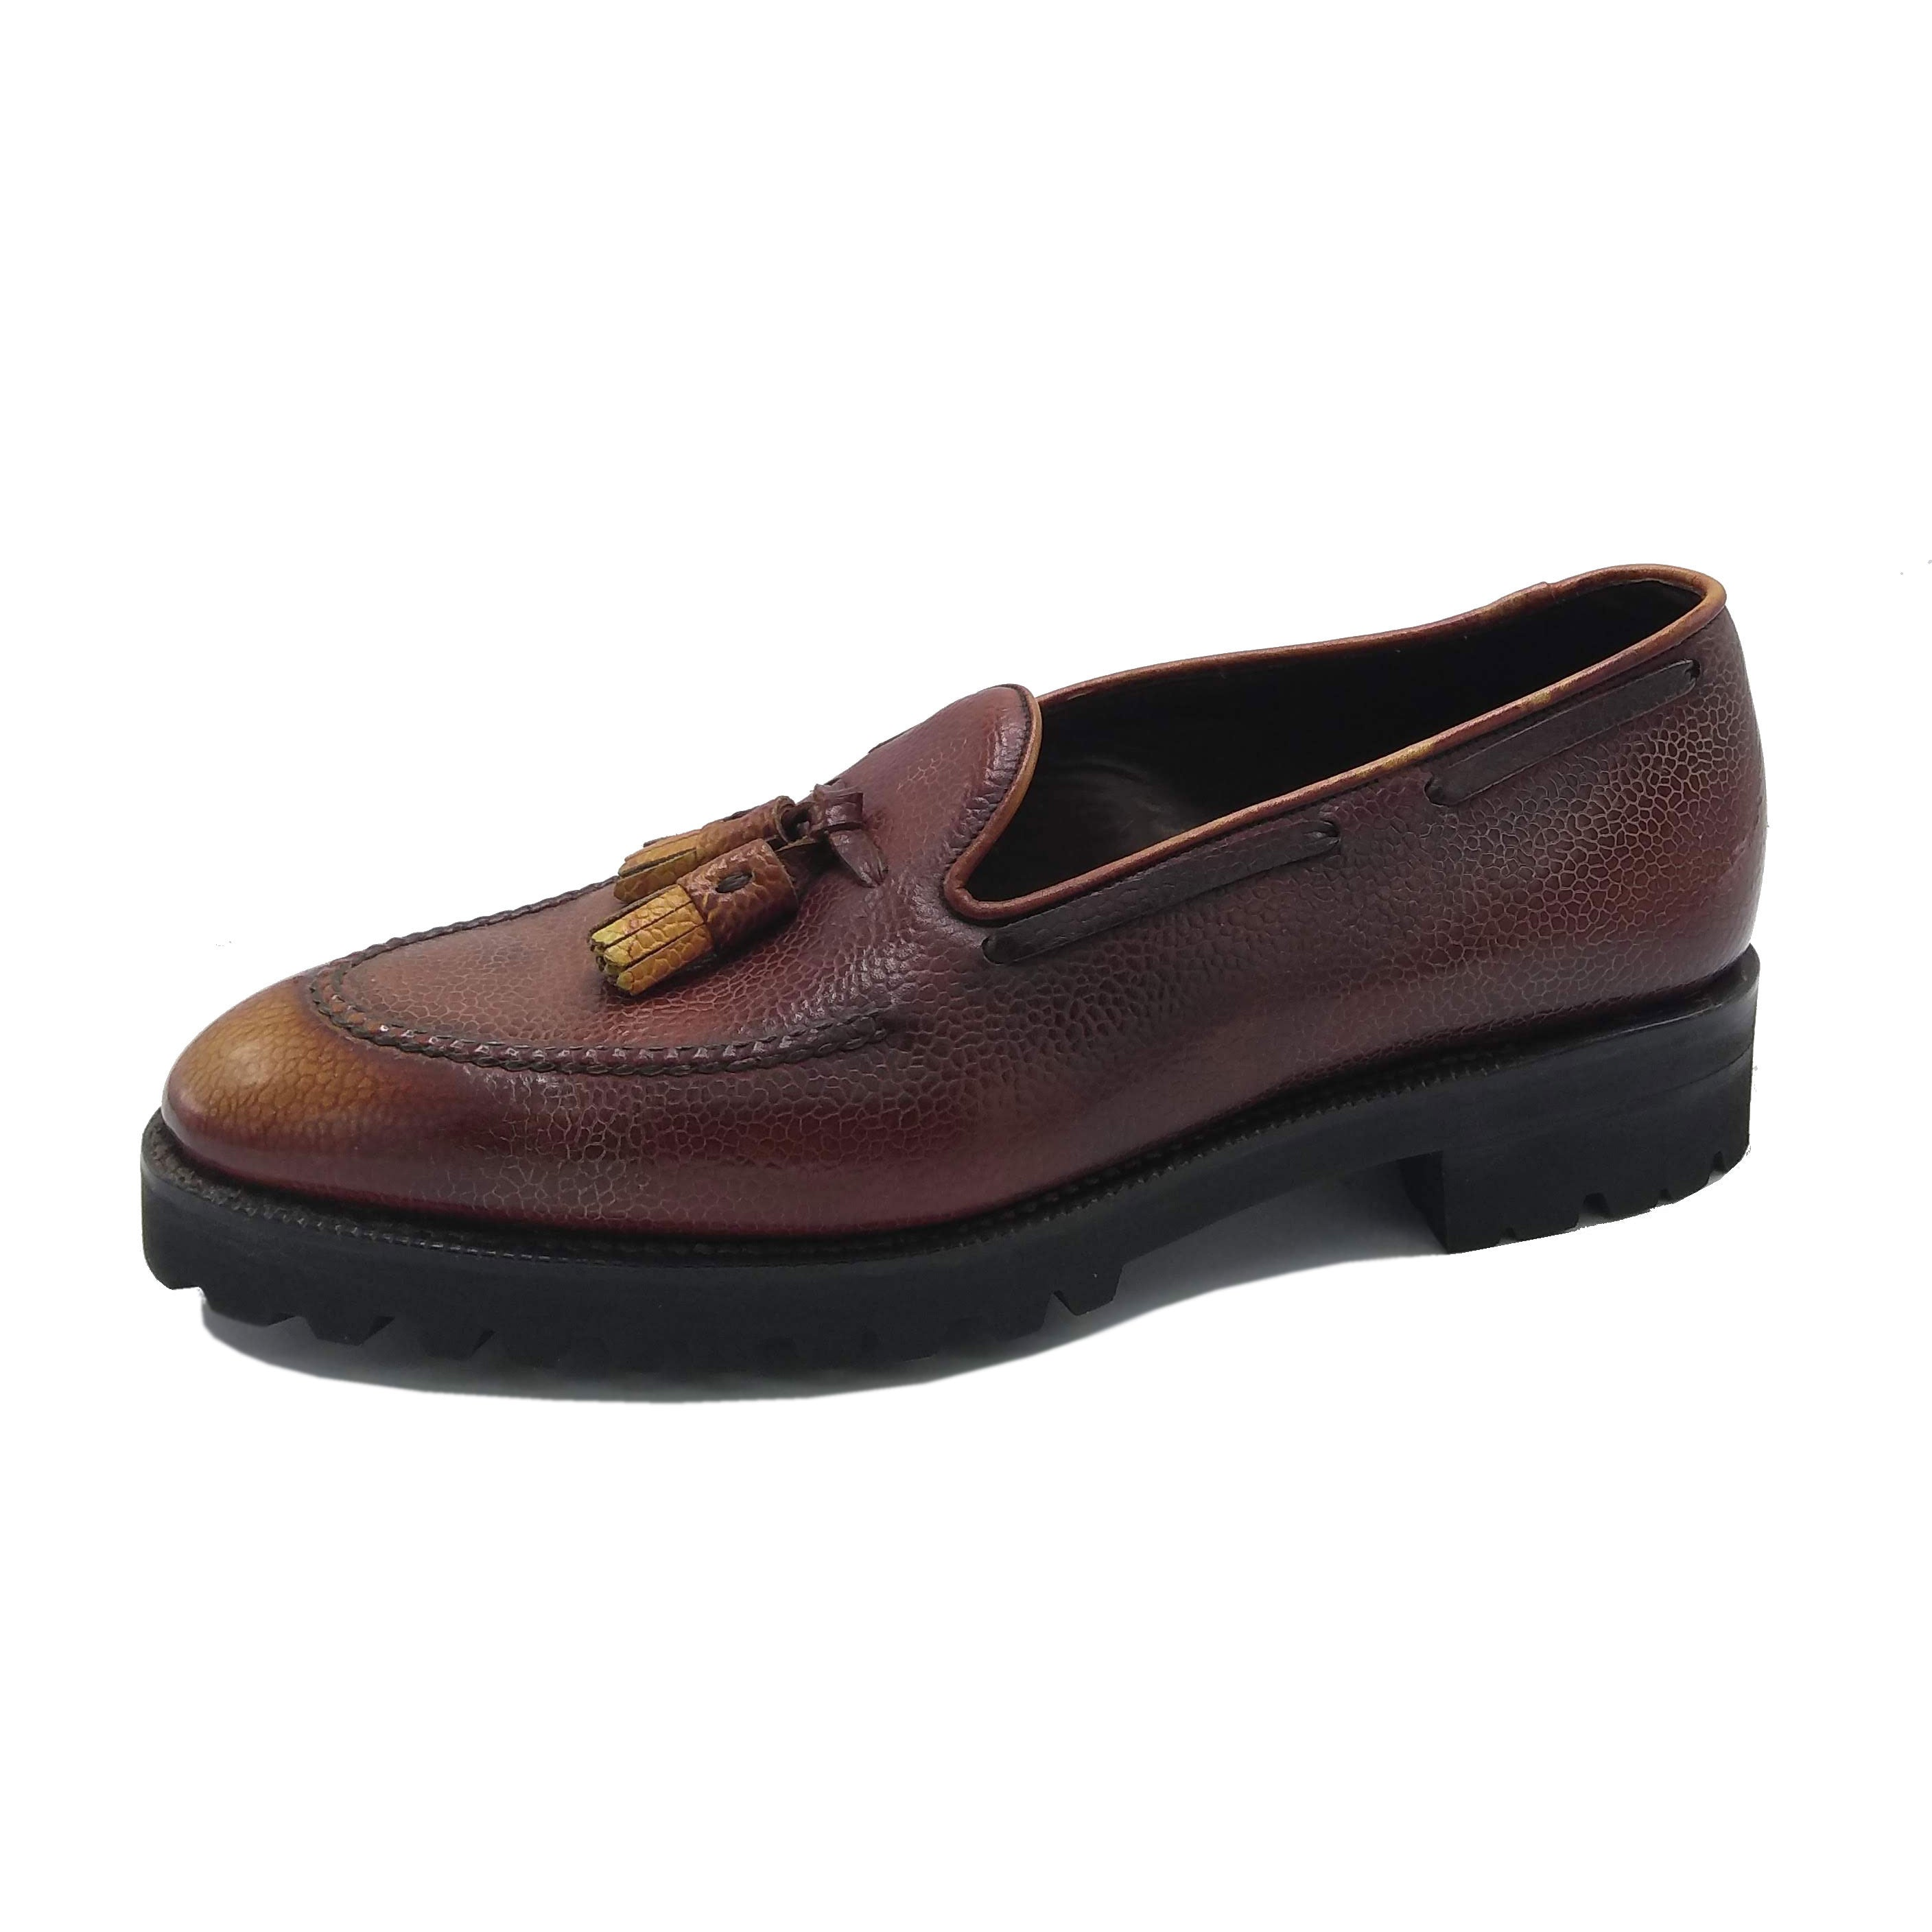 Tassel Loafer with Apron  - Brown & Cognac 3D Patina